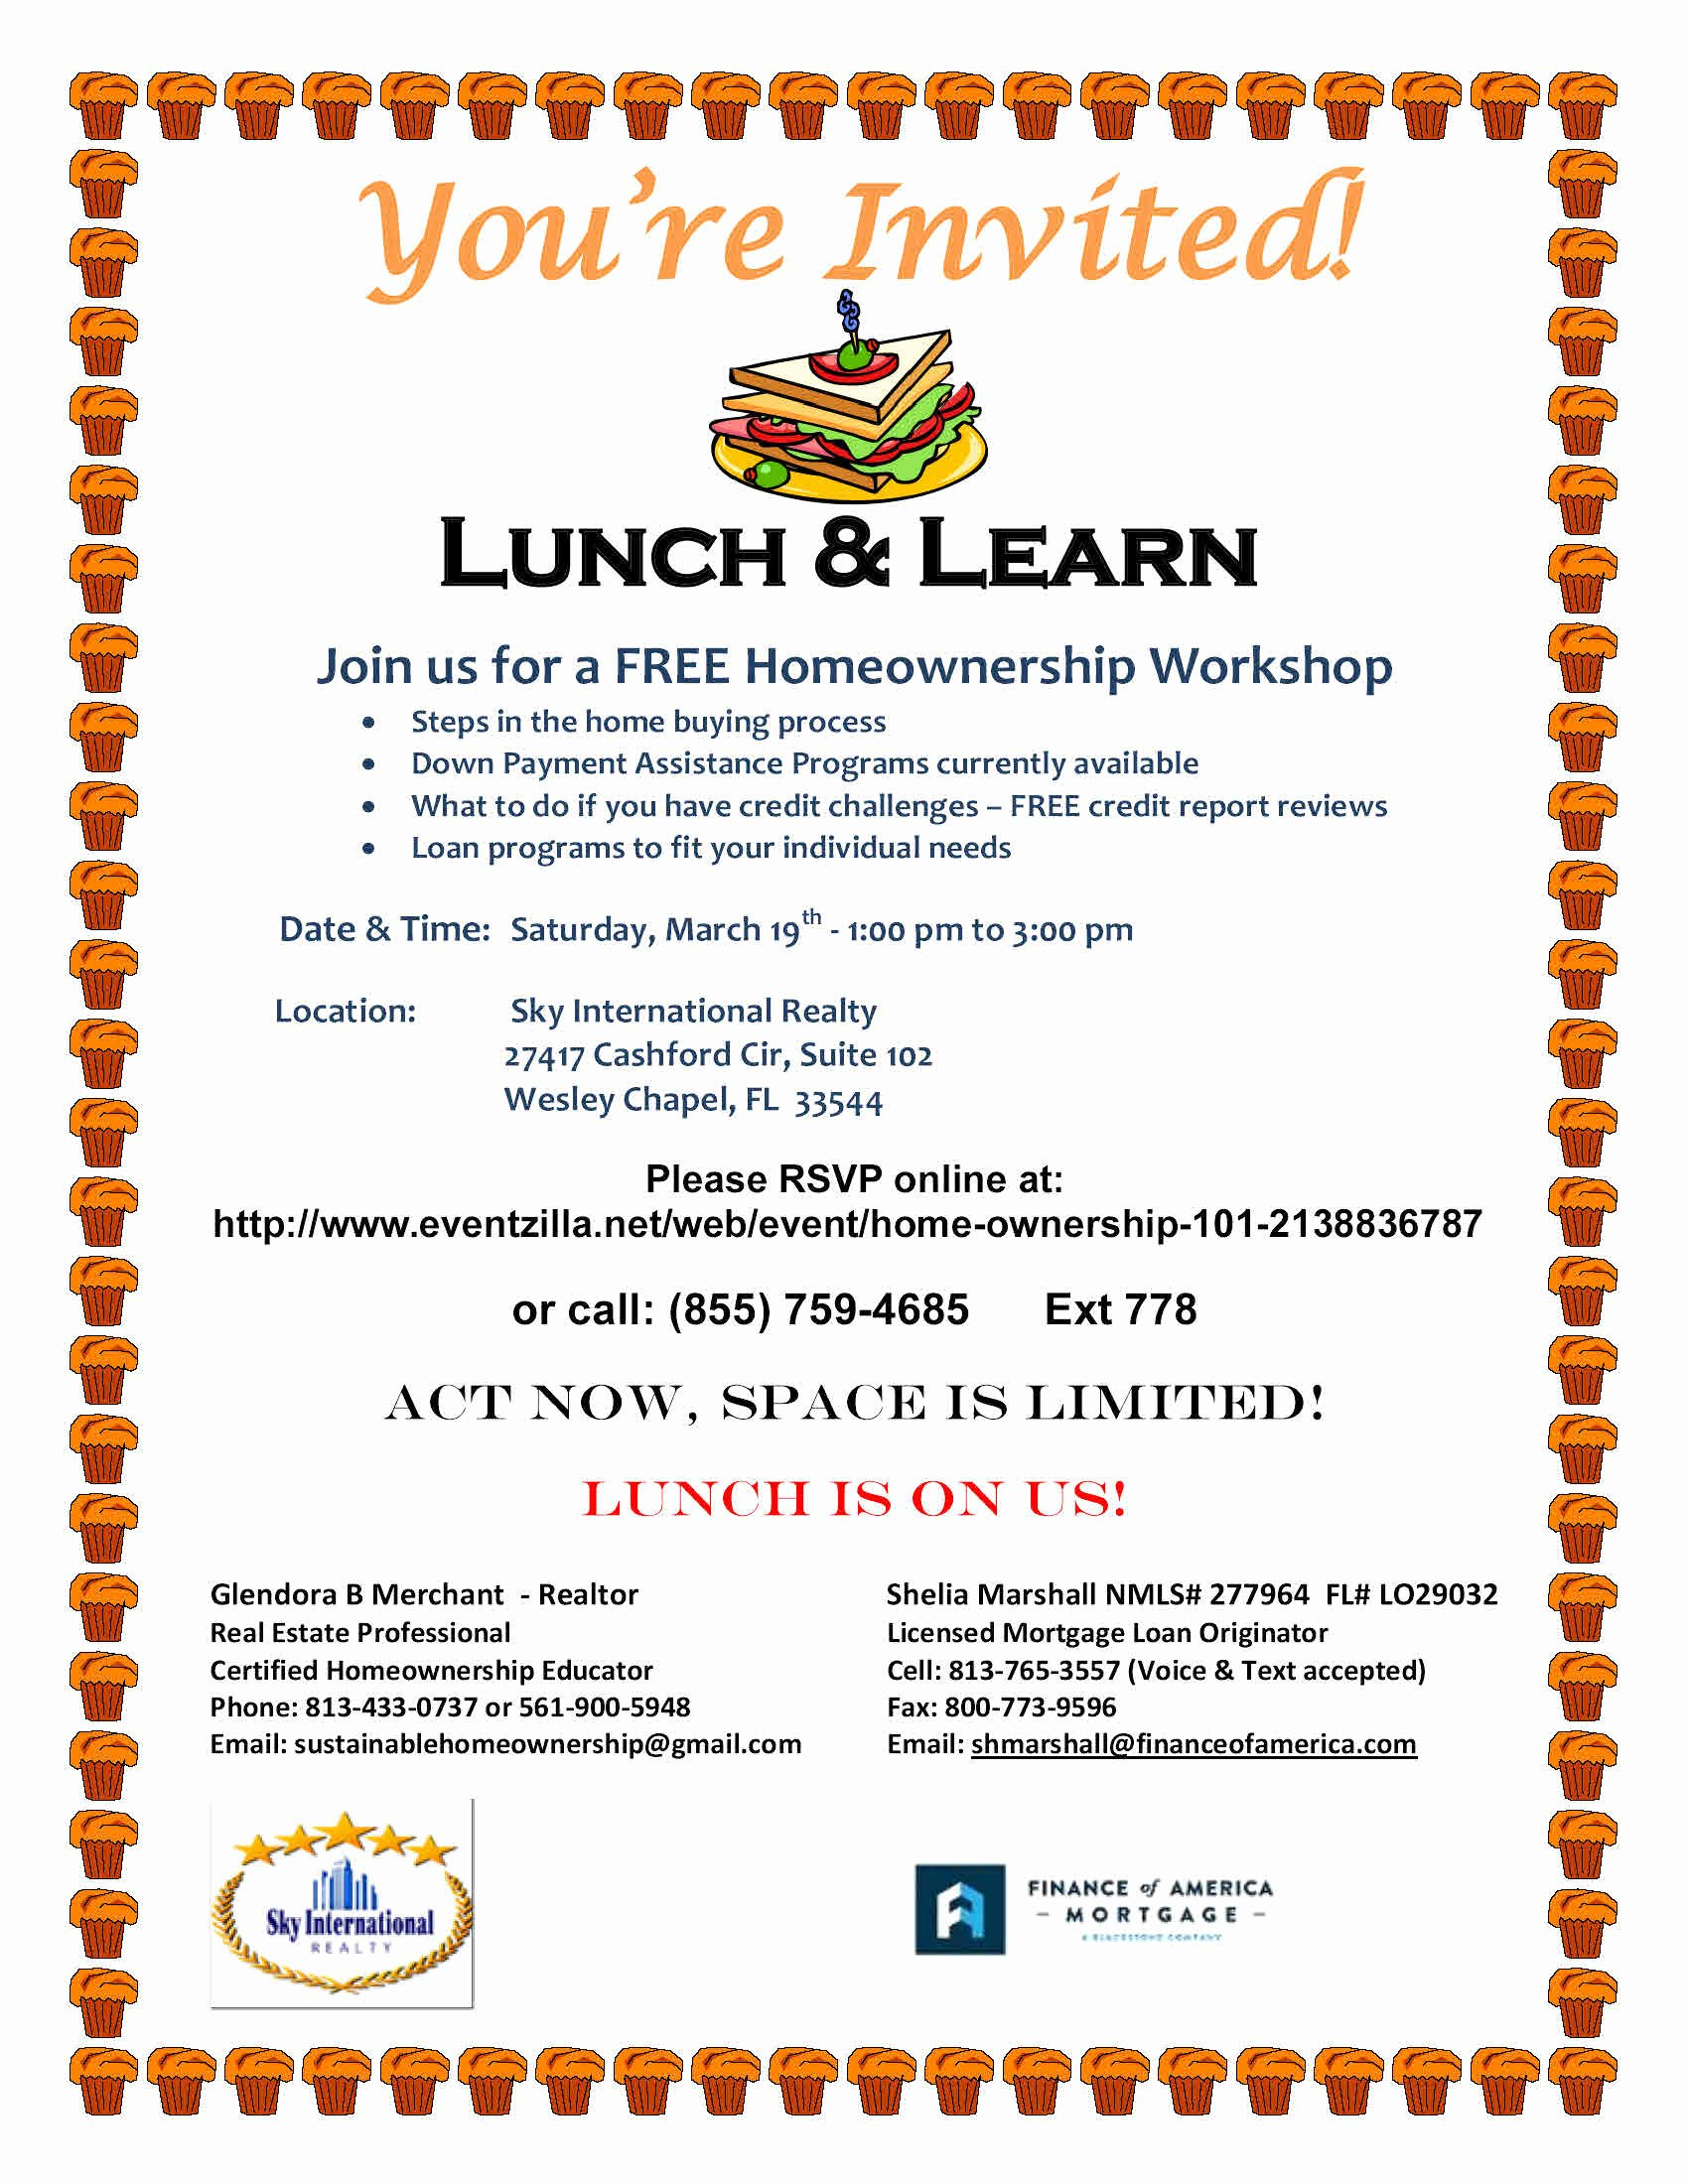 Lunch and Learn Invite Template Elegant Real Estate Education and Seminars